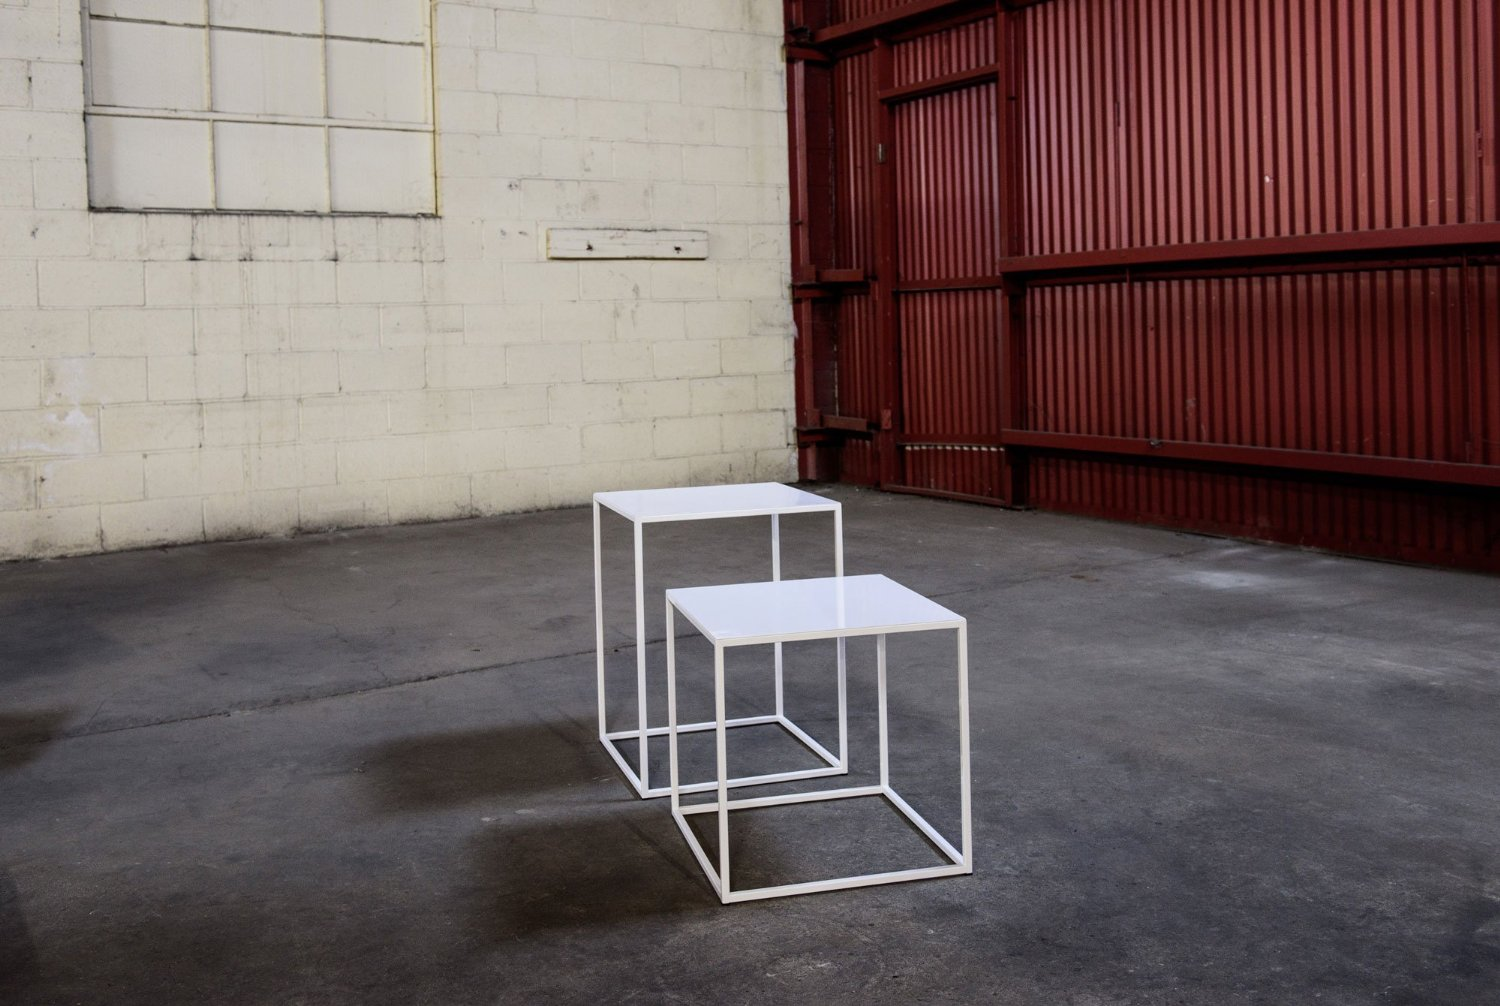 Two powder-coated white end tables, examples of futuristic furniture, by Patrick Cain Designs.